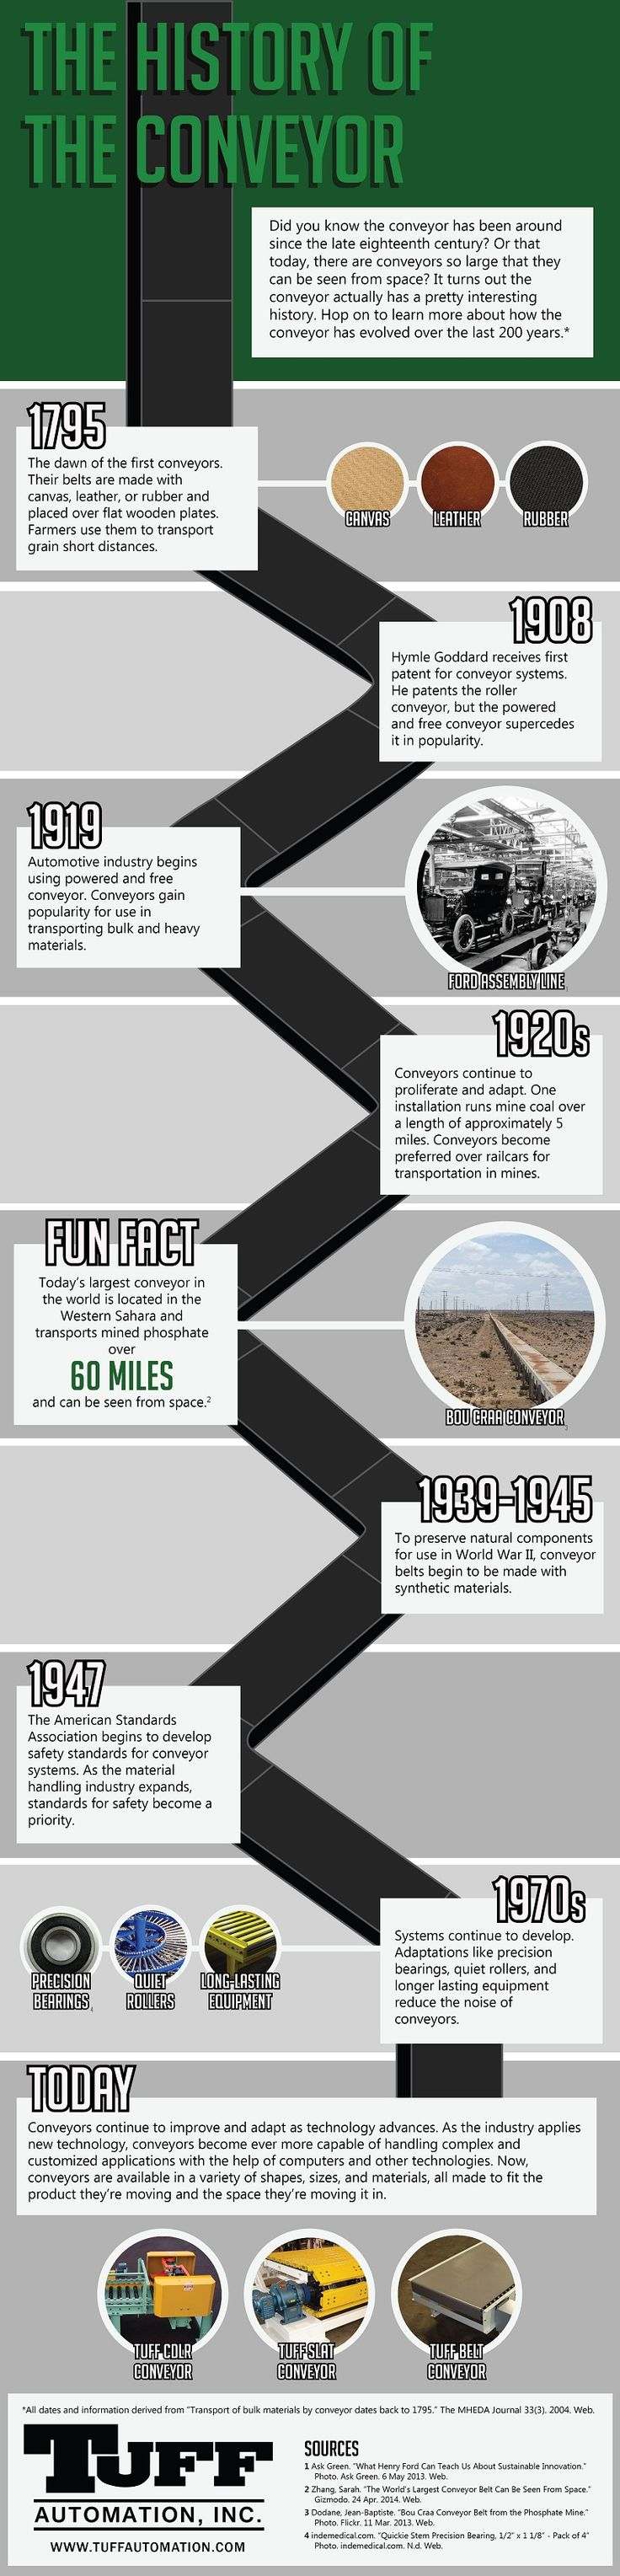 The History of the Conveyor   #infographic #History #Conveyor